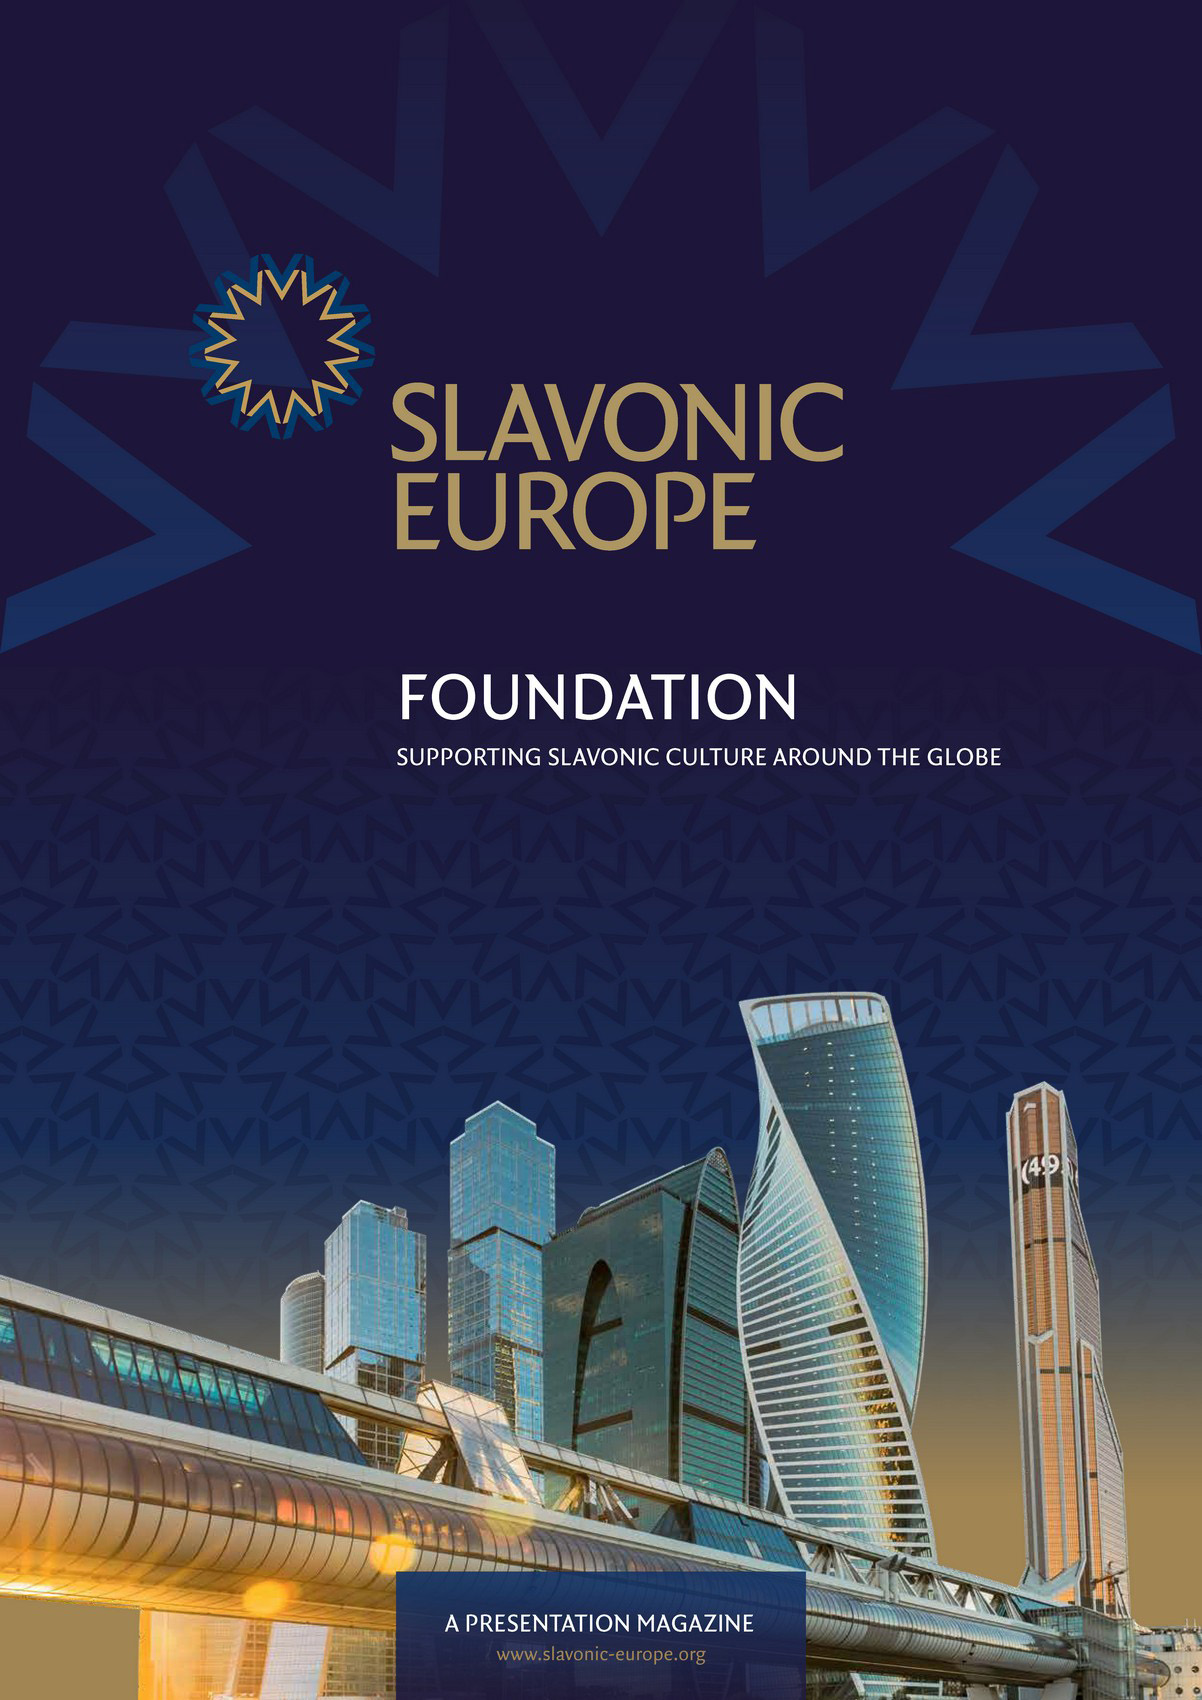 SLAVONIC EUROPE FOUNDATION - A Presentation Magazine